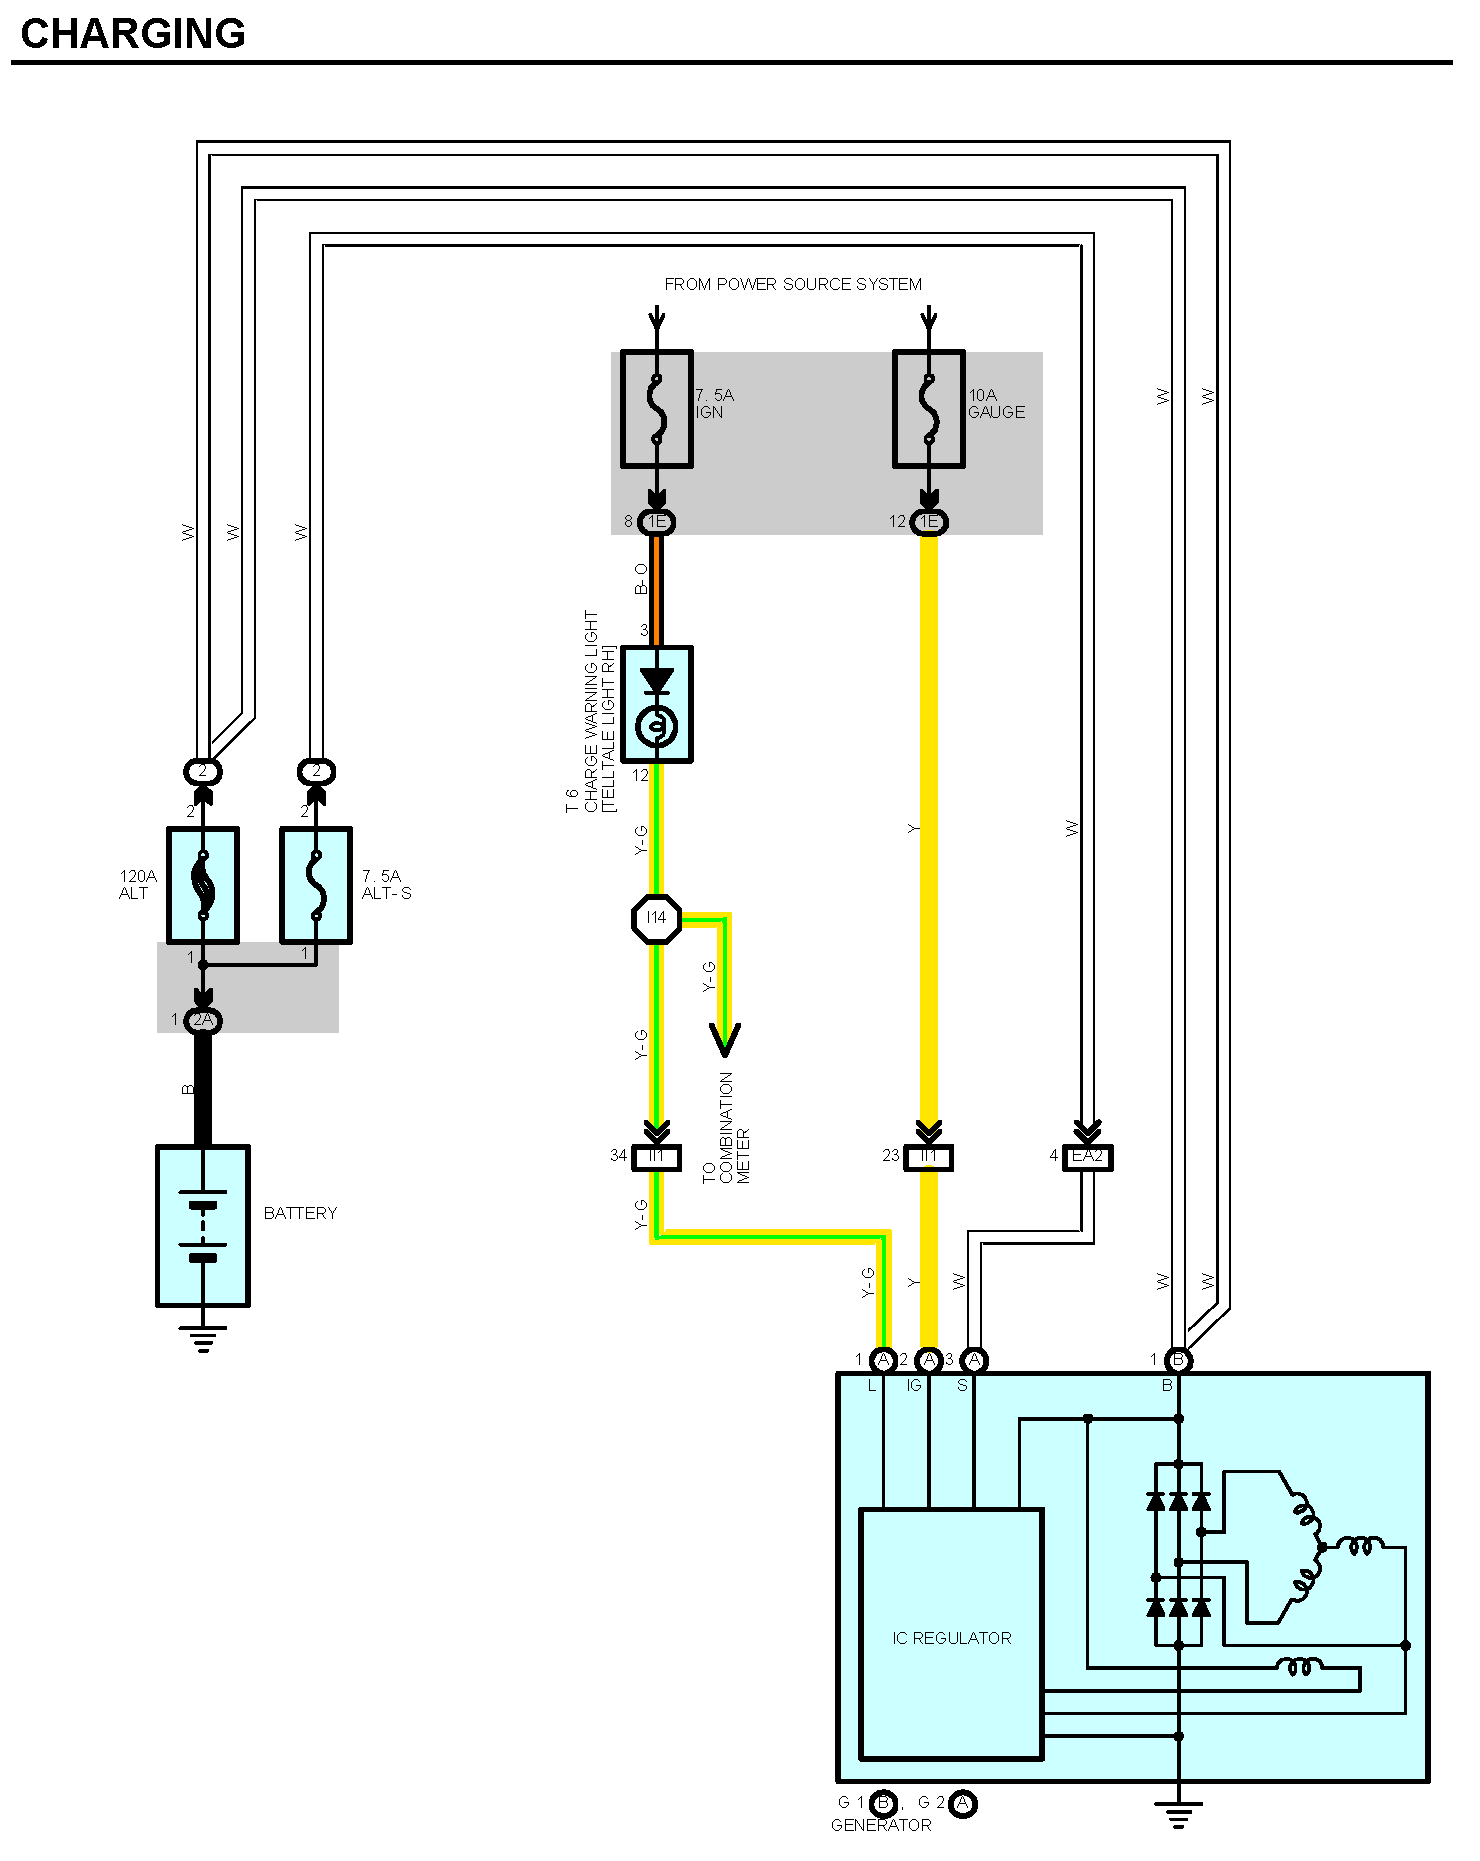 wilbo666 toyota alternators john deere voltage regulator wiring diagram the below wiring diagram taken from the jza80 tsrm shows the general wiring arrangement for alternators with inbuilt regulators